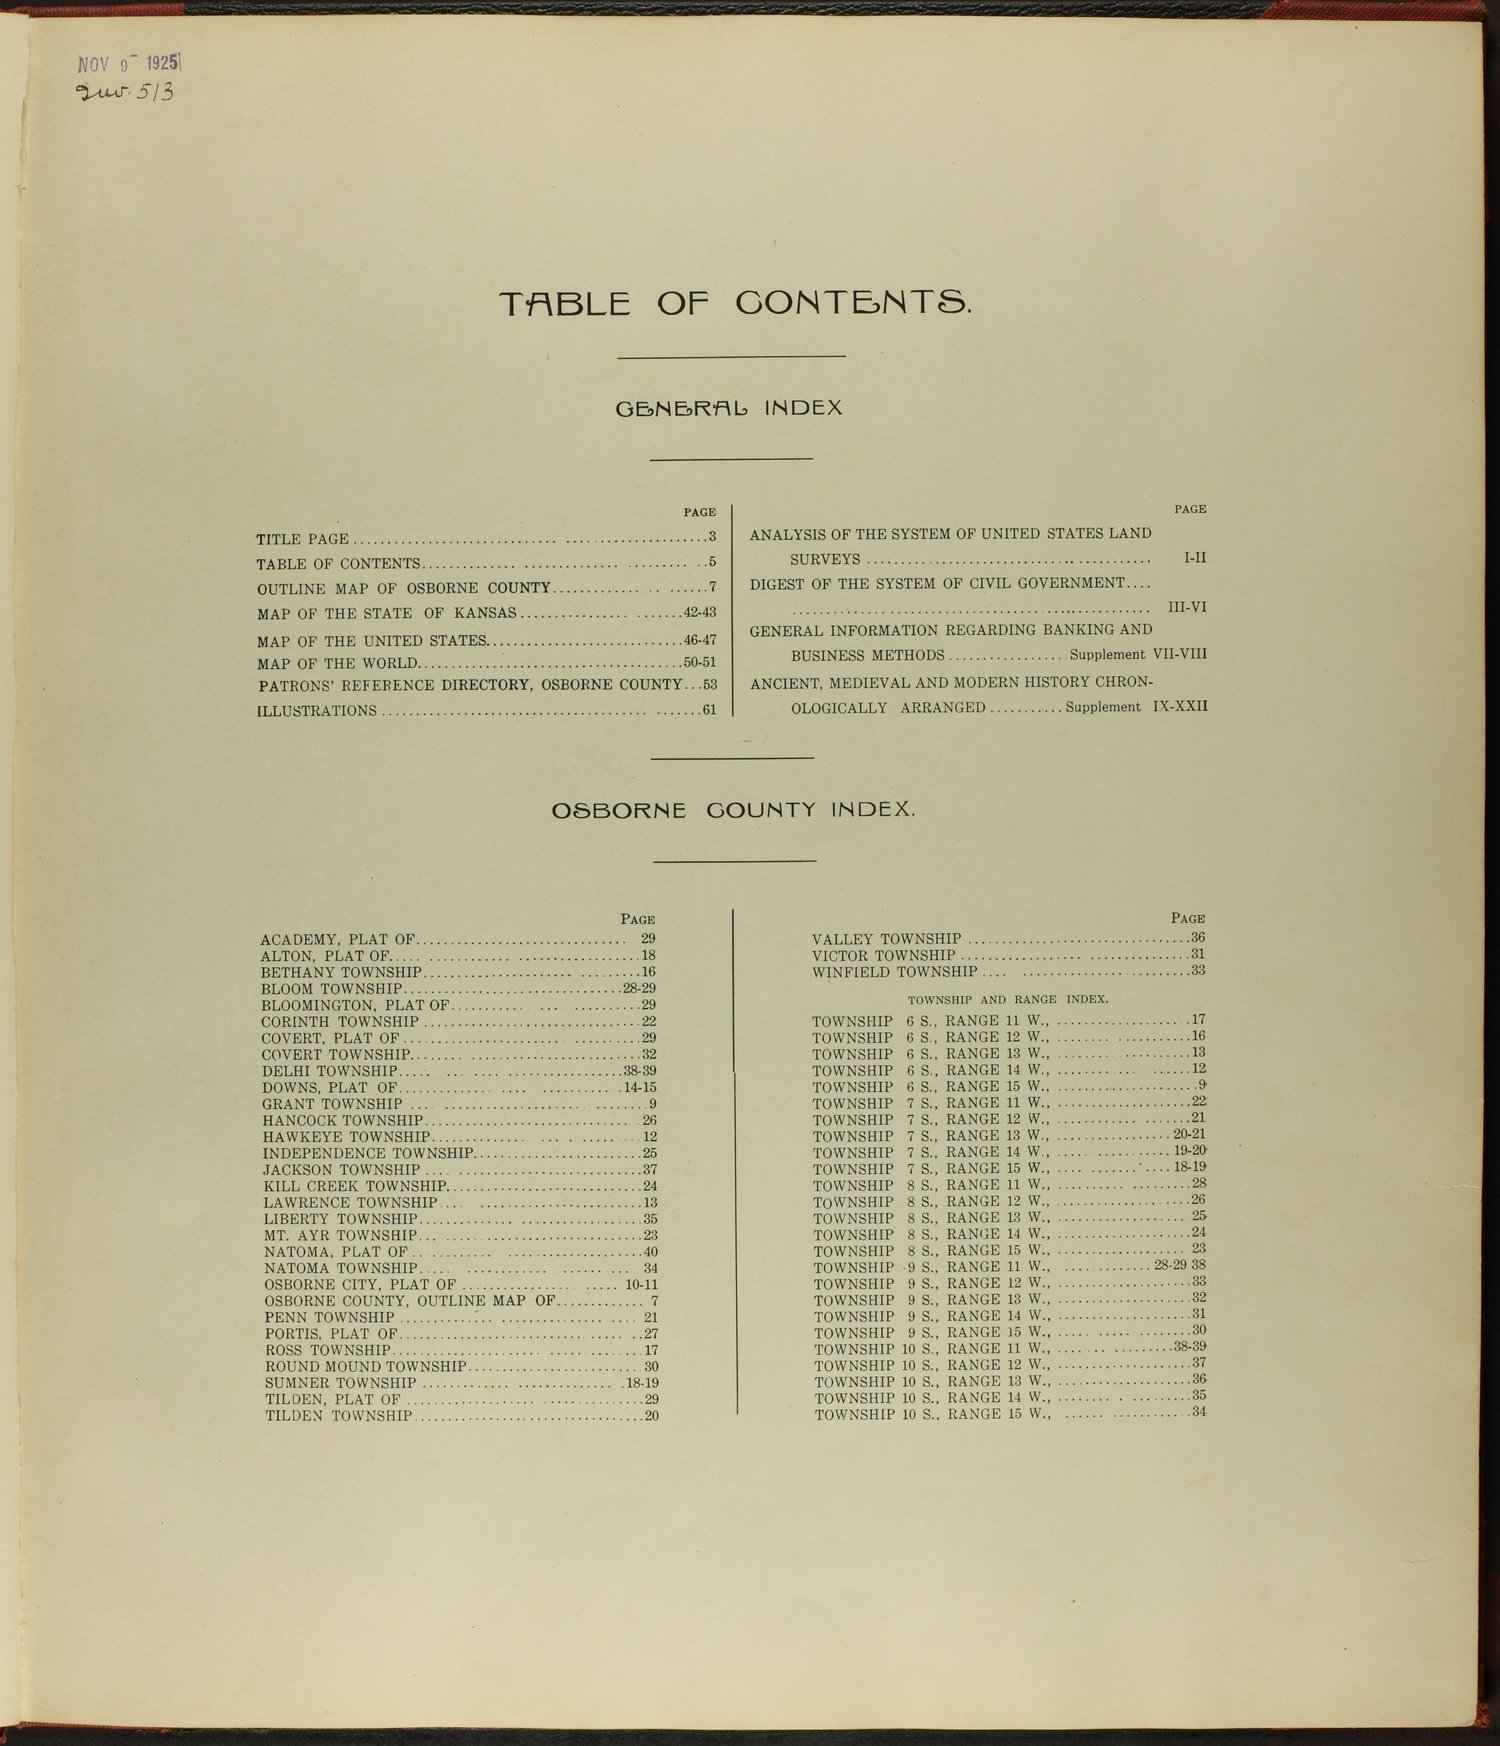 Standard atlas of Osborne County, Kansas - Table of contents